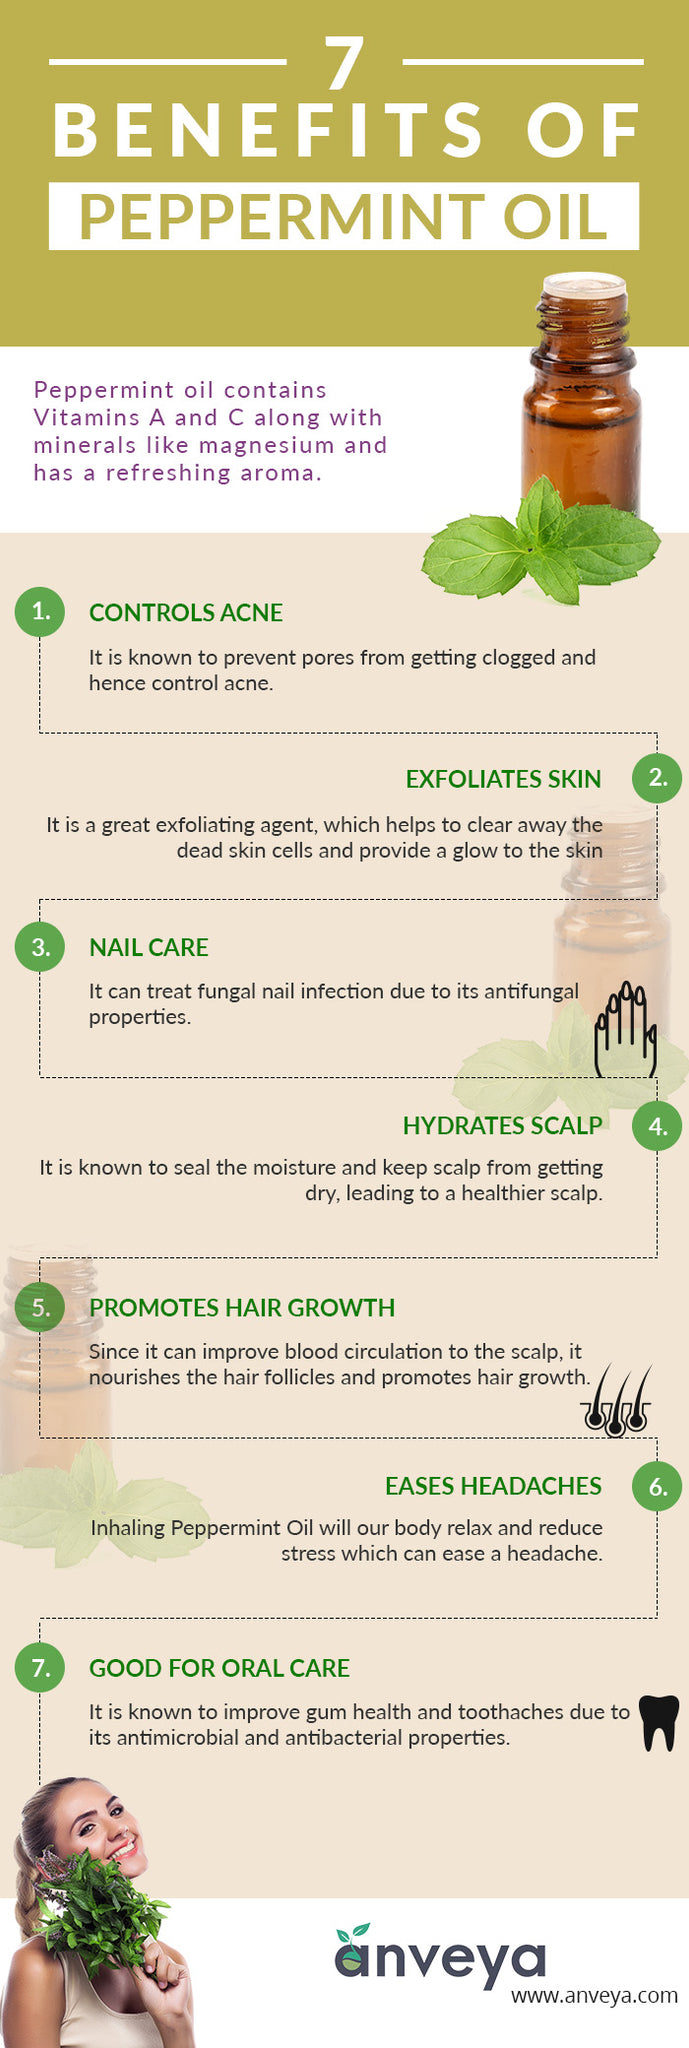 7 Benefits of Peppermint Oil